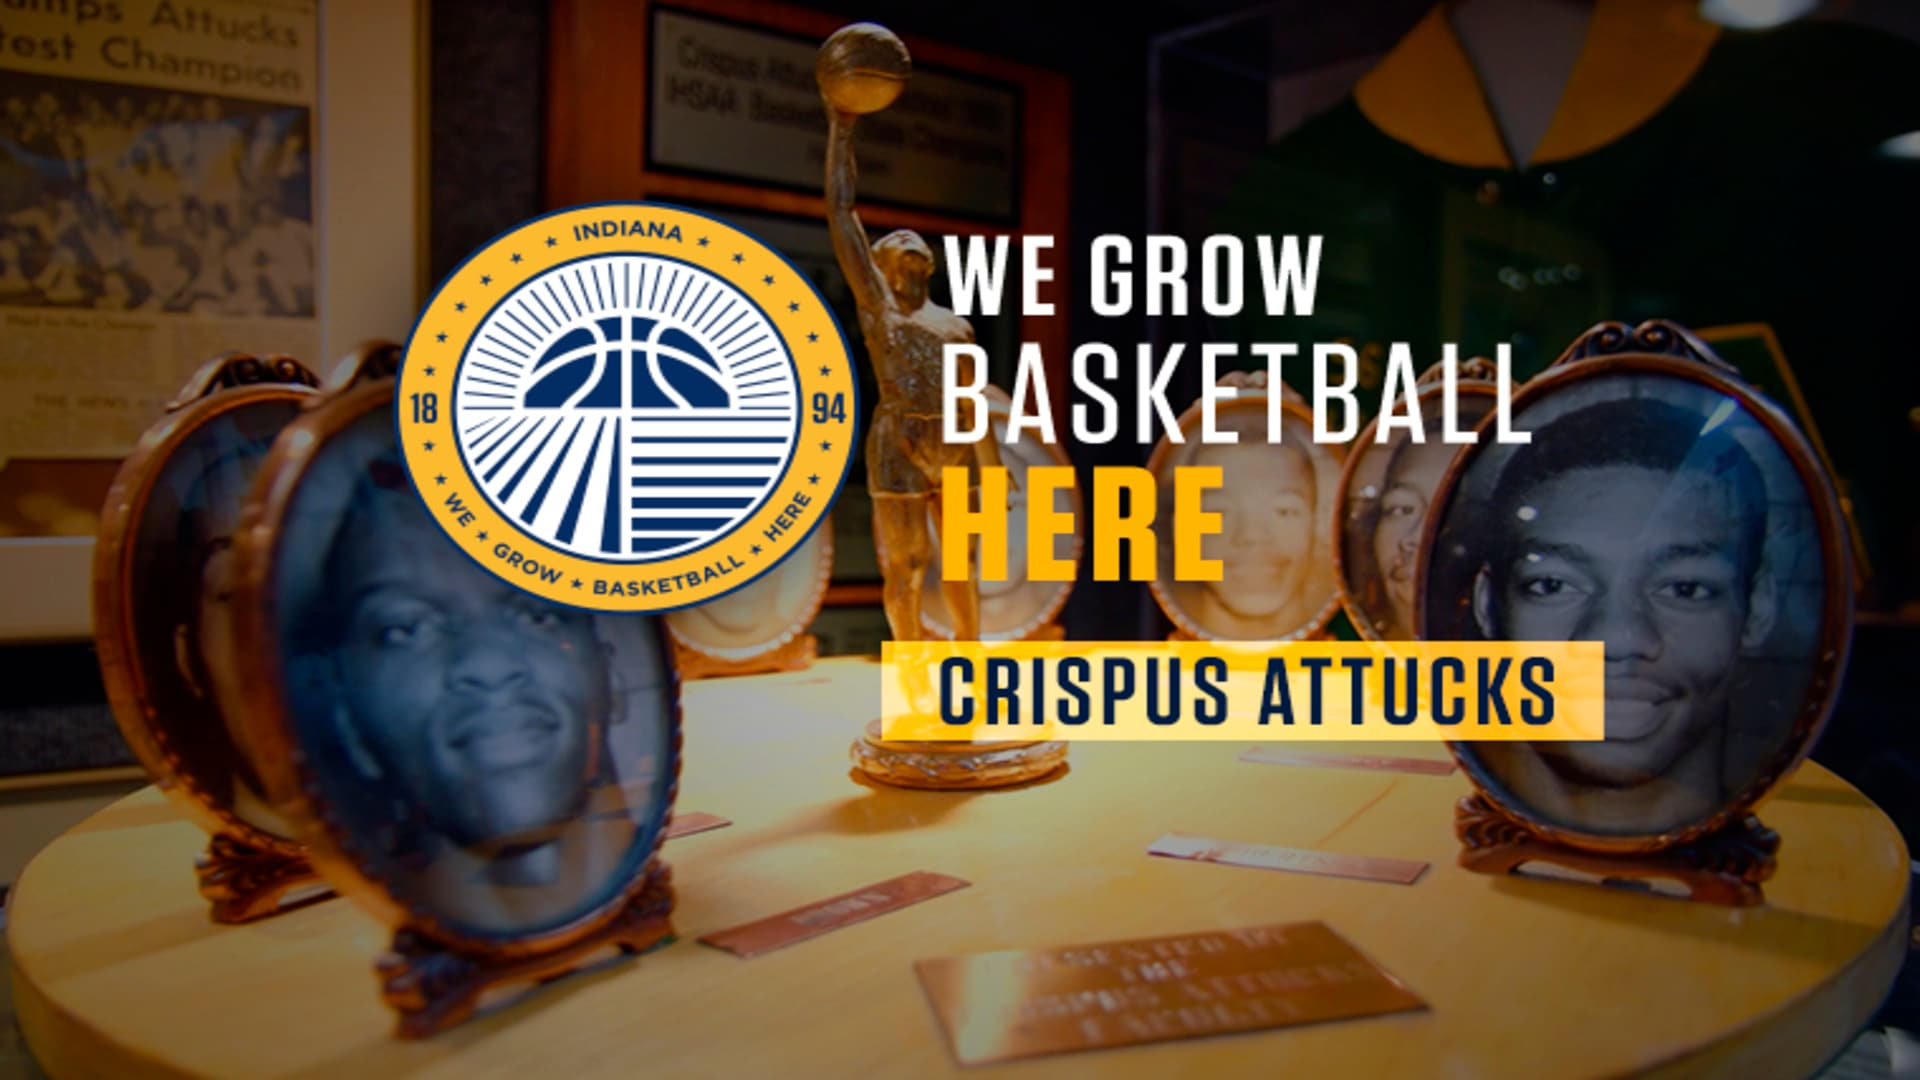 Crispus Attucks High School - We Grow Basketball Here Ep. 3 (Part 2)